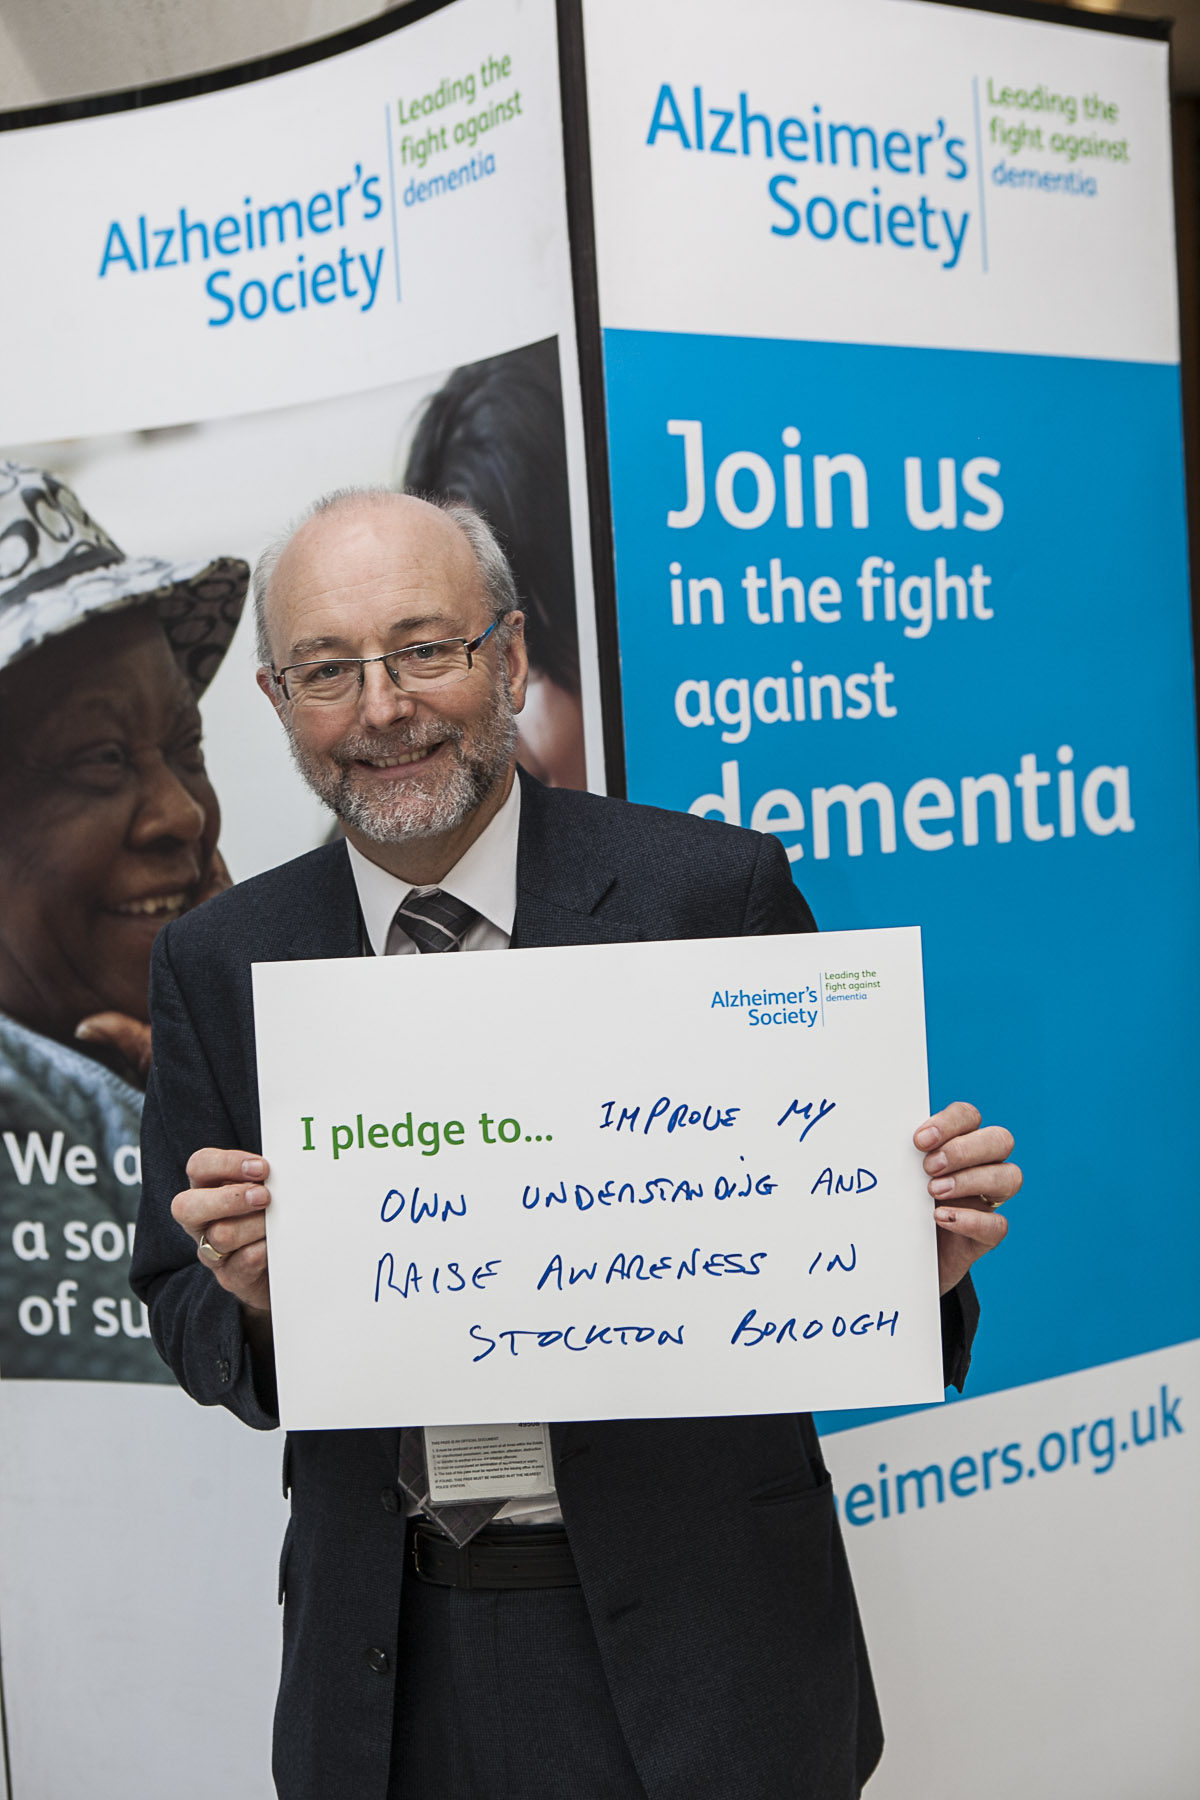 Alex makes pledge in the fight against dementia